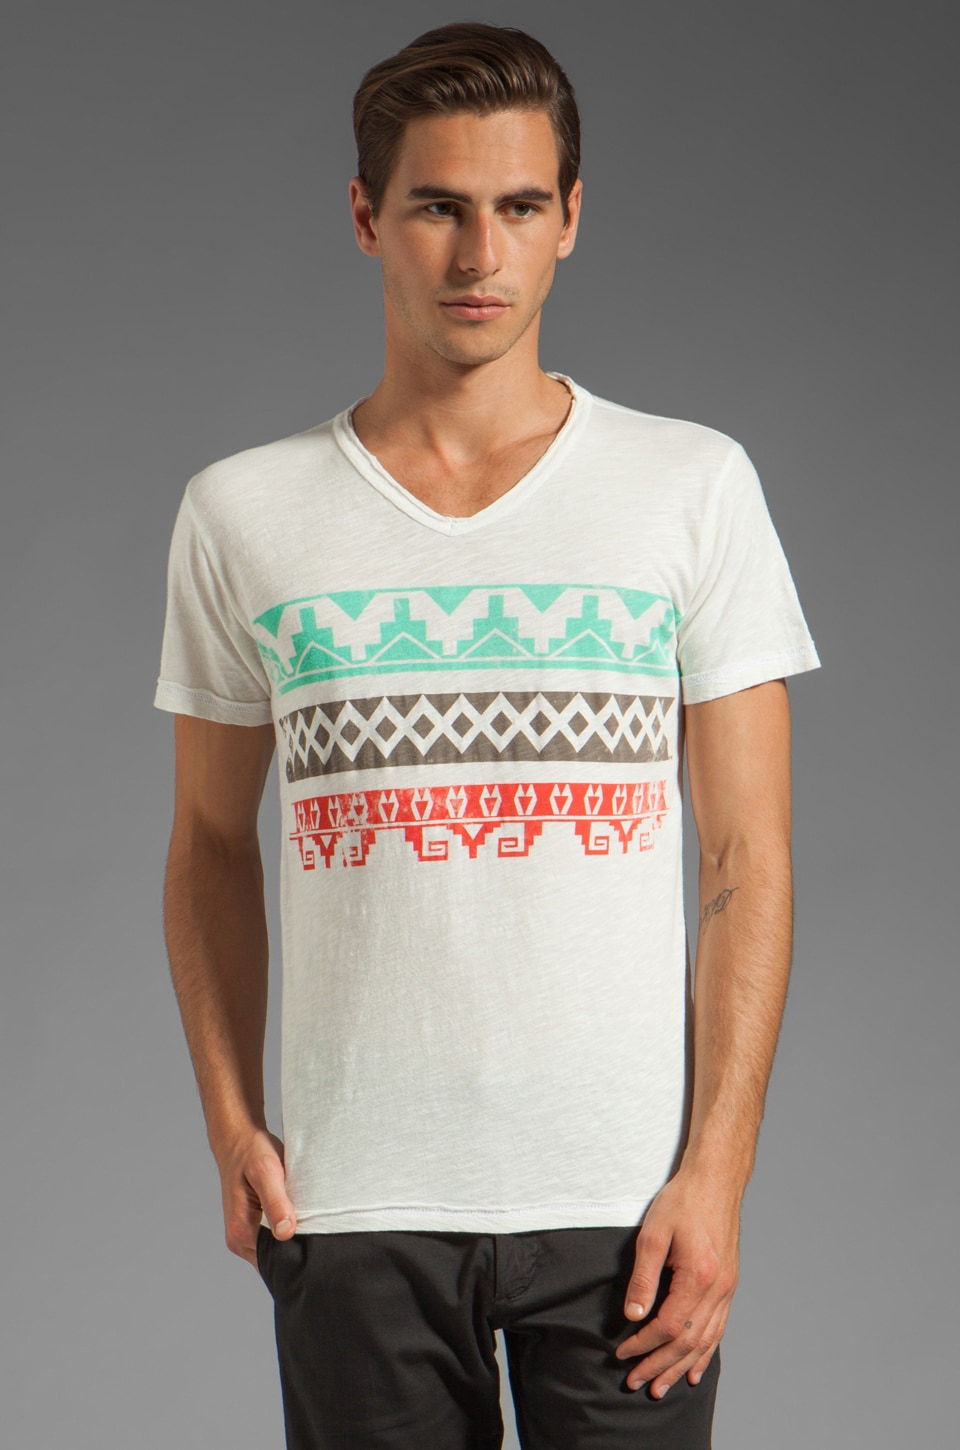 Cohesive & co. Mystique Short Sleeve V-Neck Tee in Ice